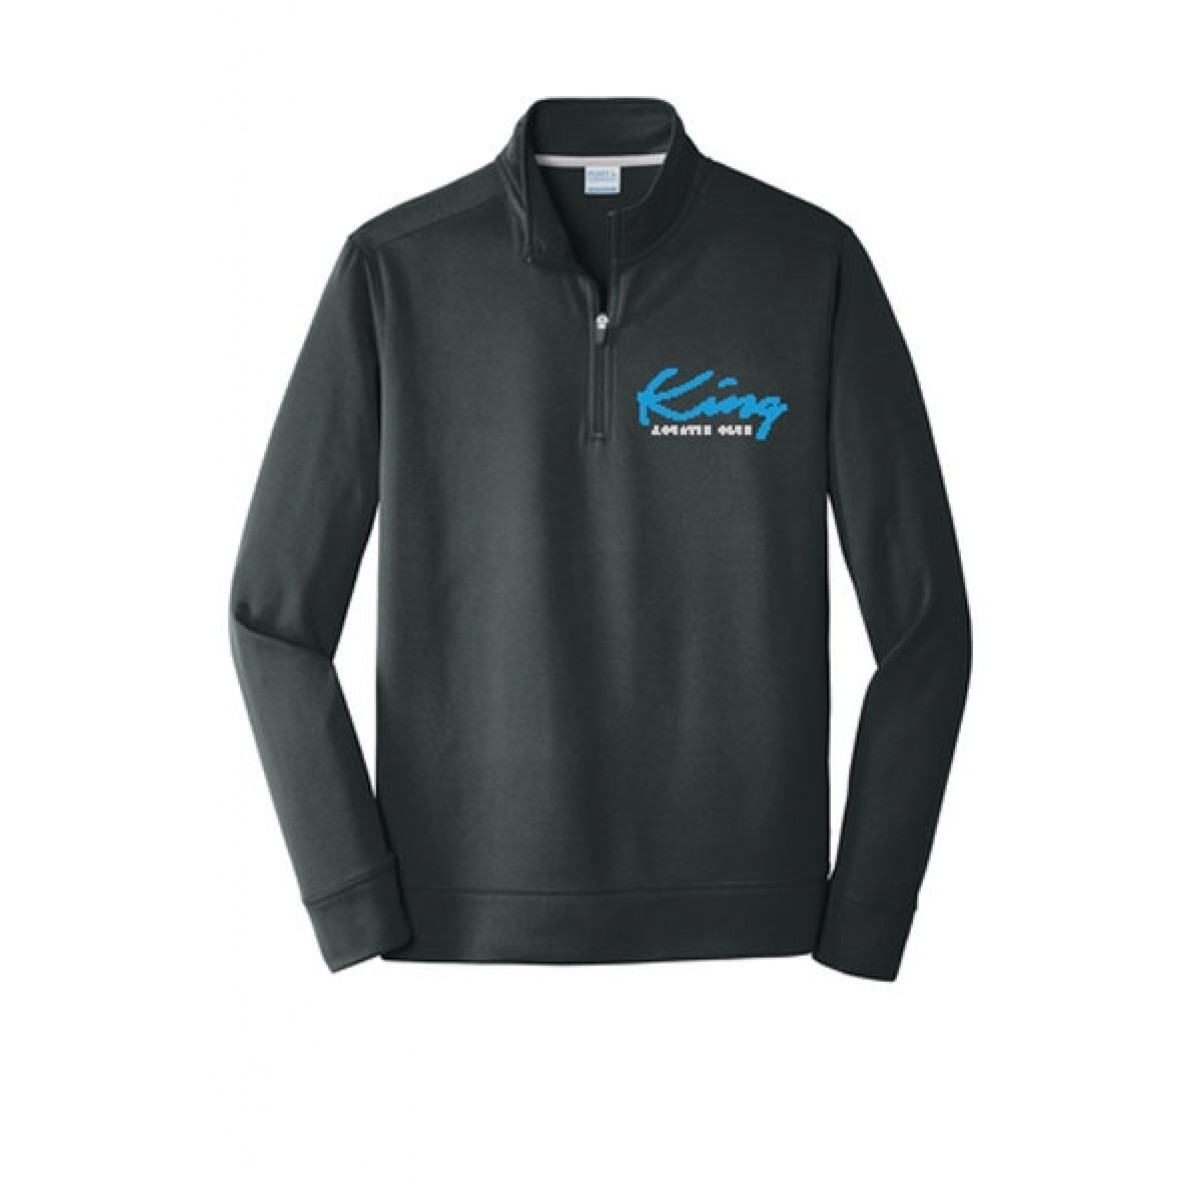 Embroidered Port & Company® Performance Fleece 1/4-Zip Pullover Sweatshirt